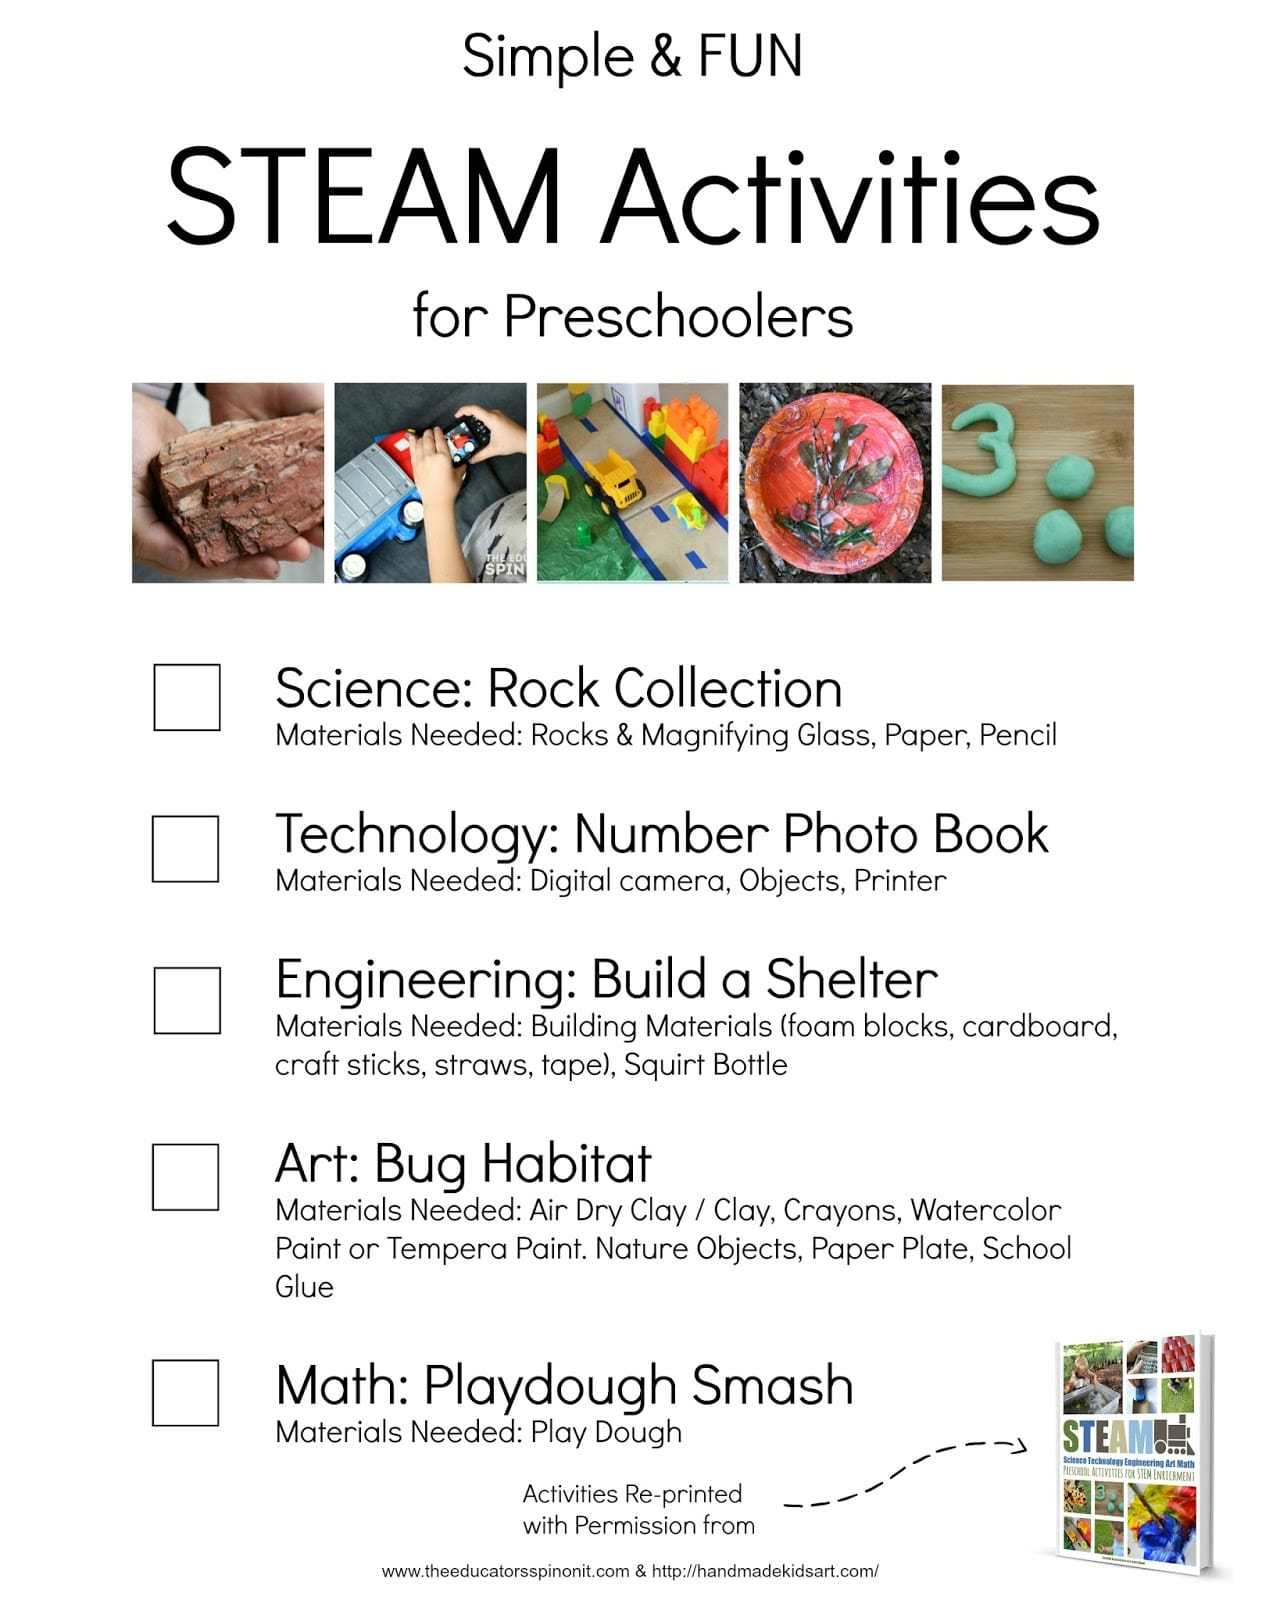 Simple And FUN STEAM Activities For Preschoolers The